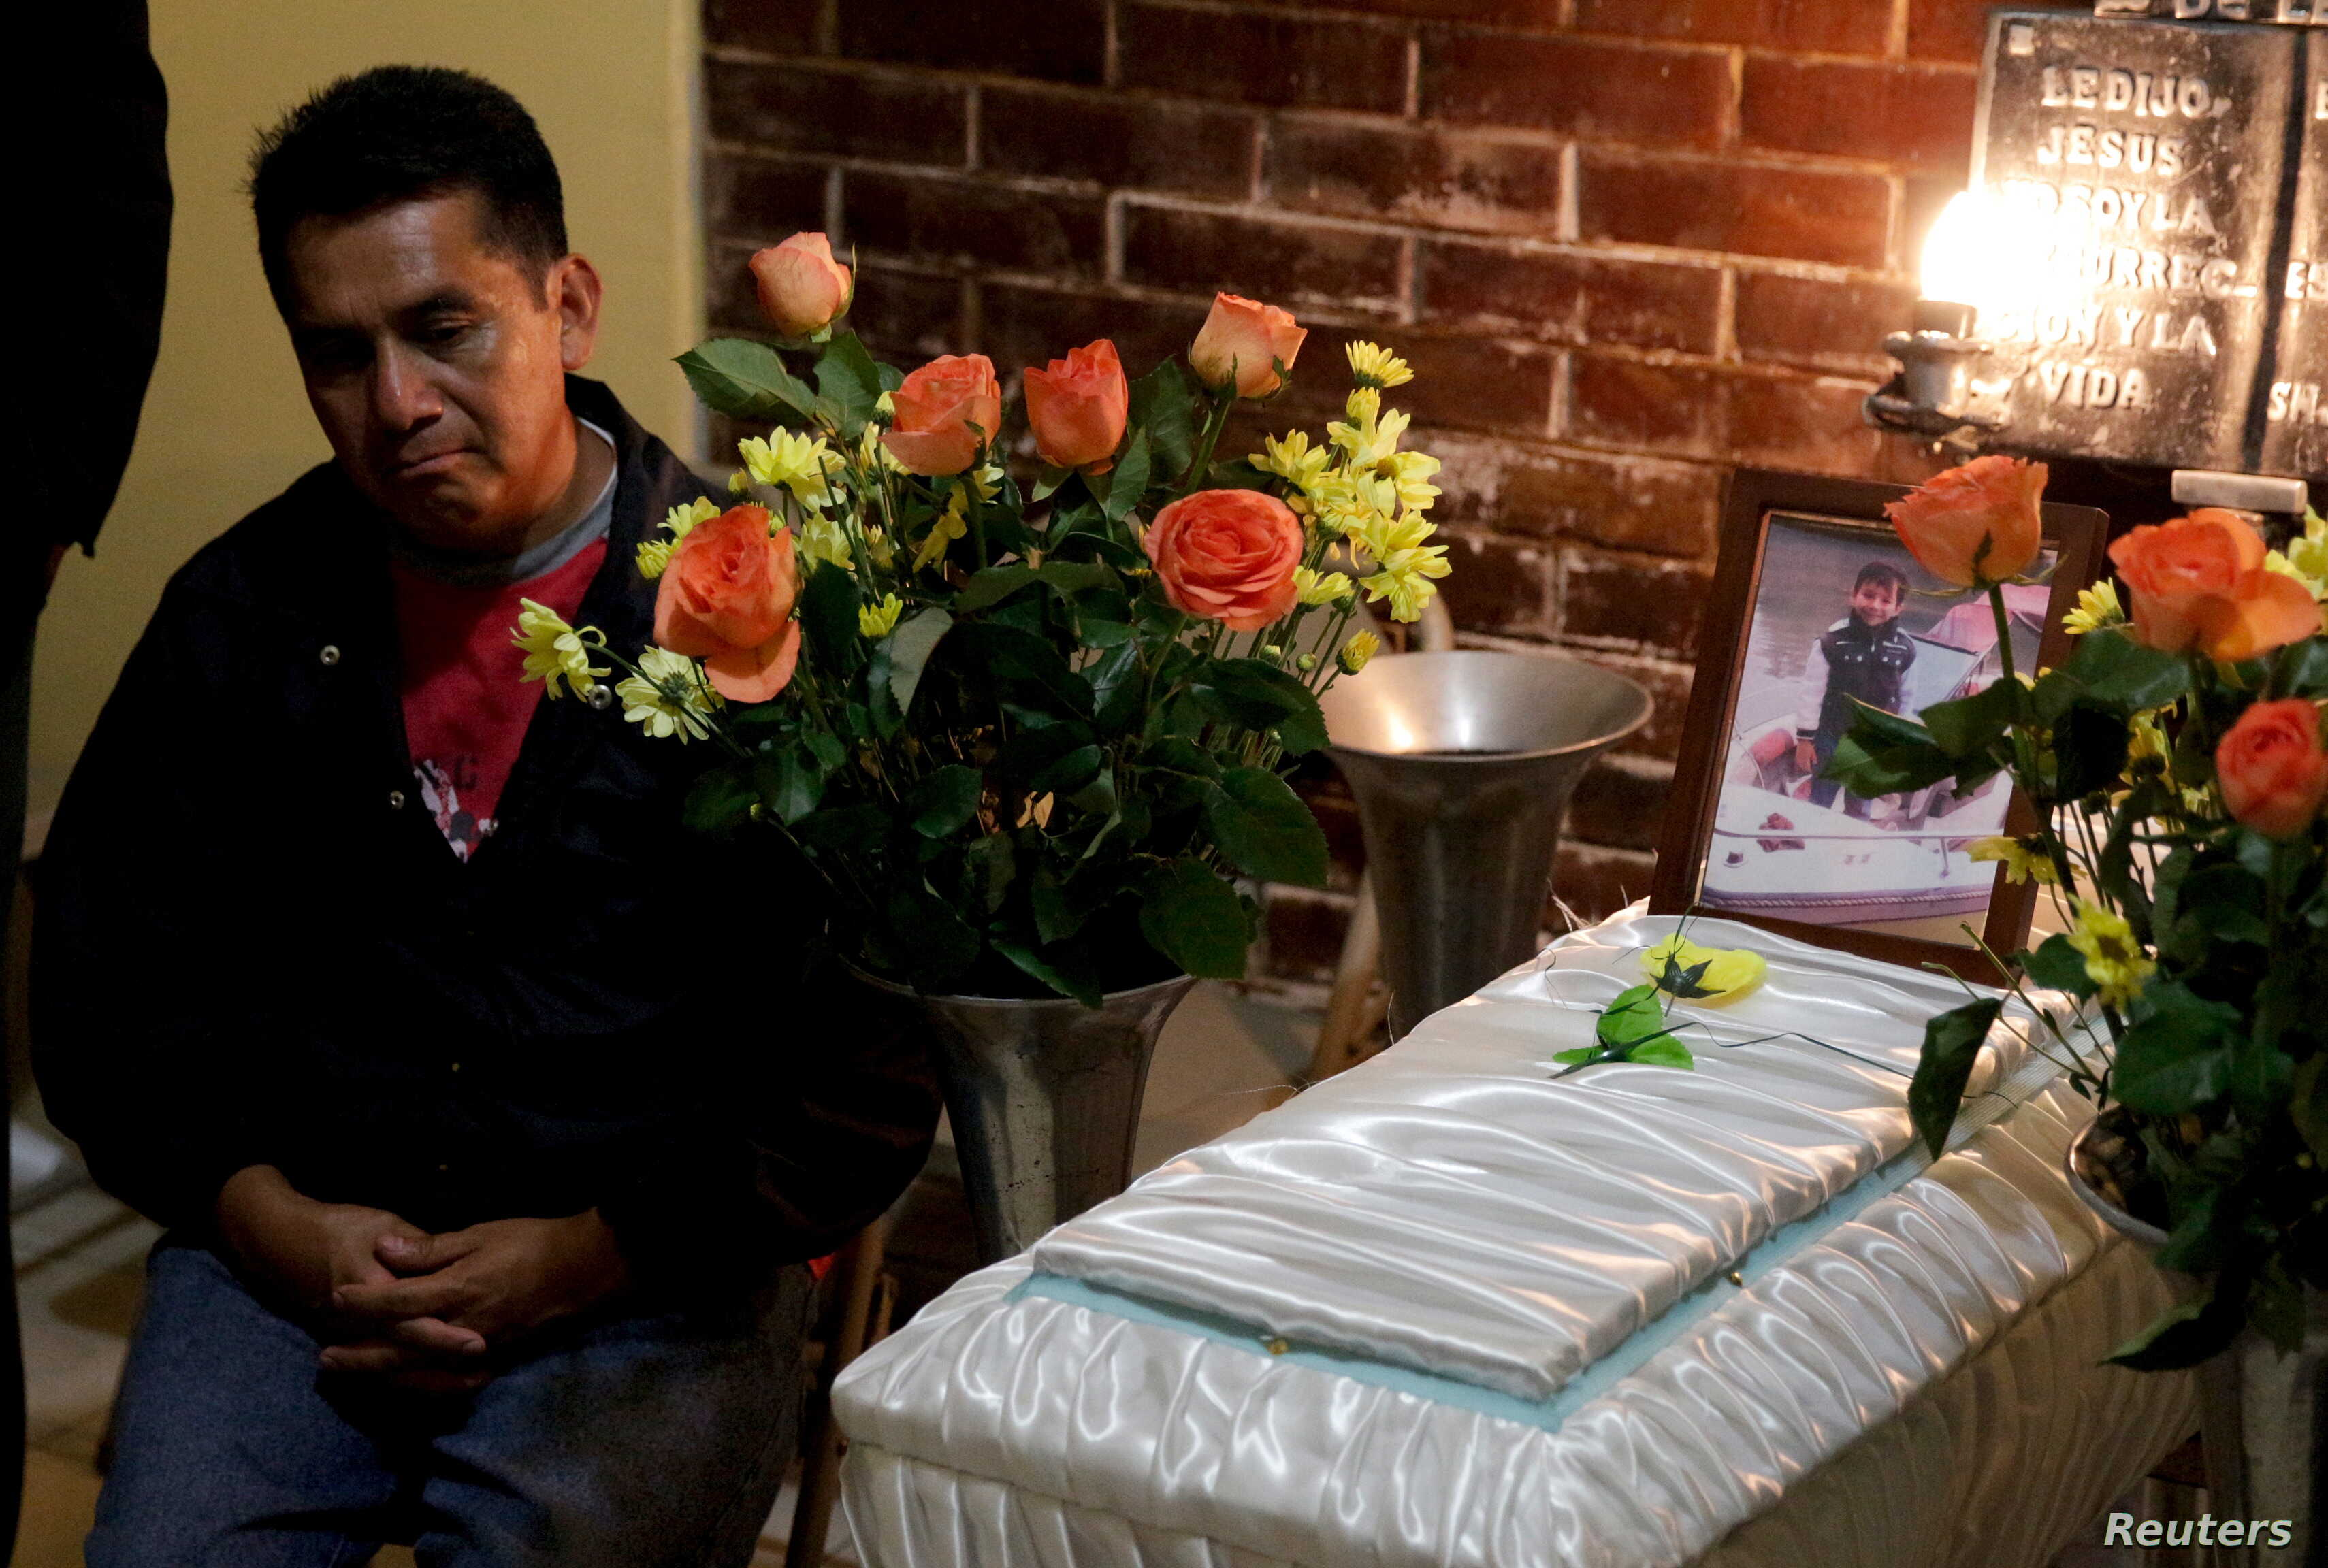 A man sits next to the coffin of mudslide victim Andres Gomez, 4, during his wake in Santa Catarina Pinula, on the outskirts of Guatemala City, Oct. 4, 2015.